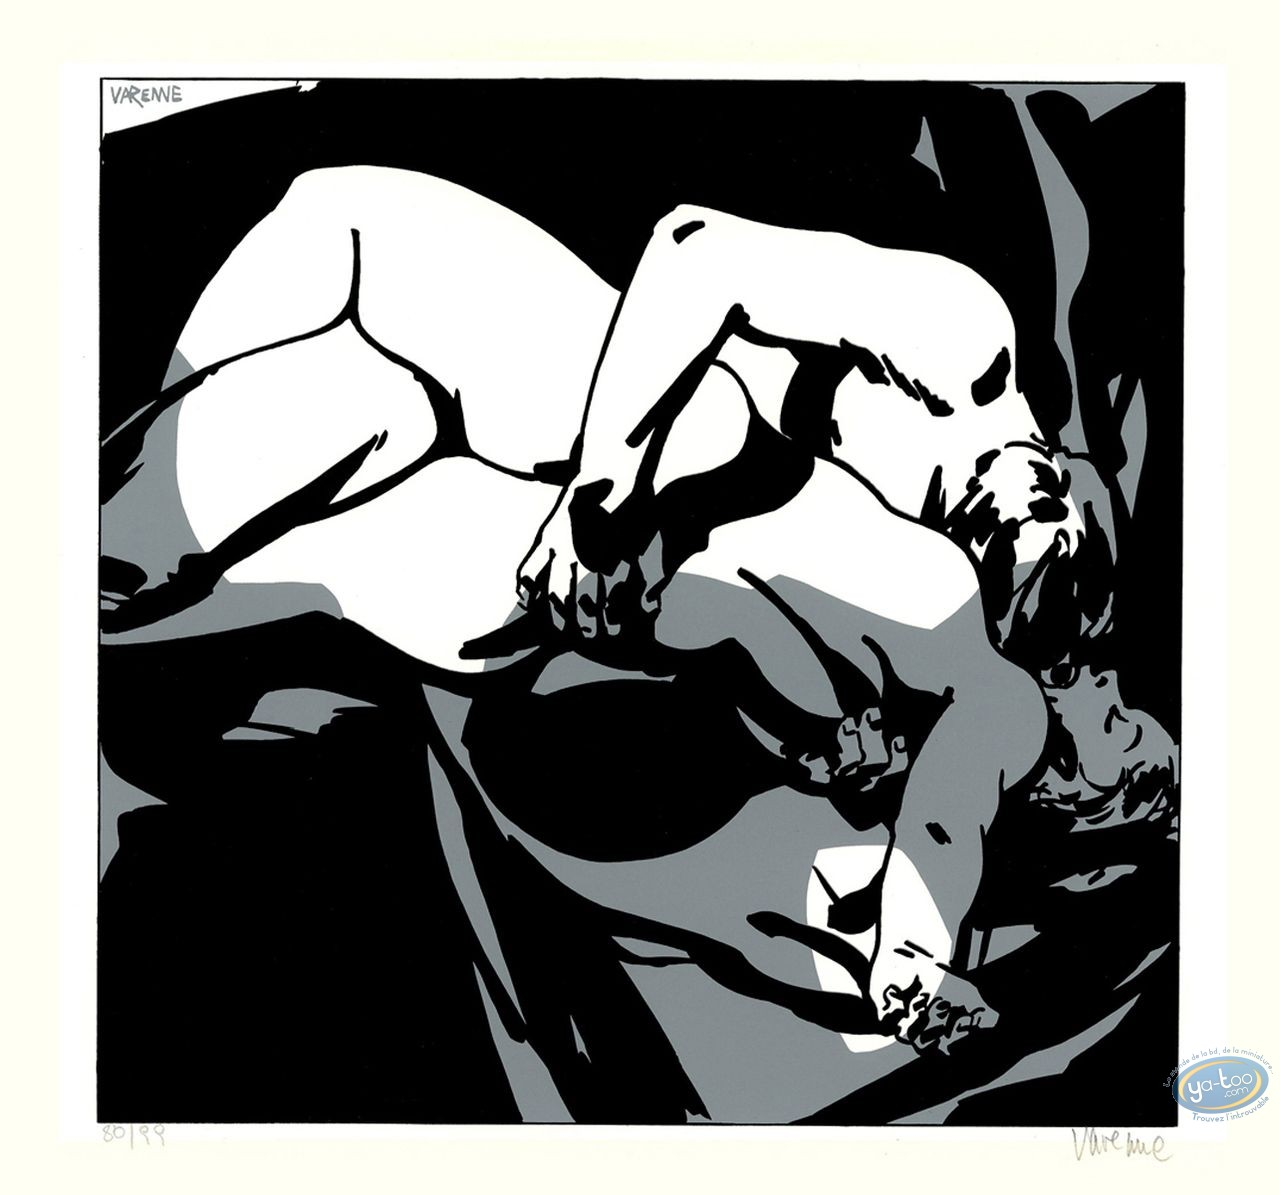 Serigraph Print, Corps à Corps : Body to body 2